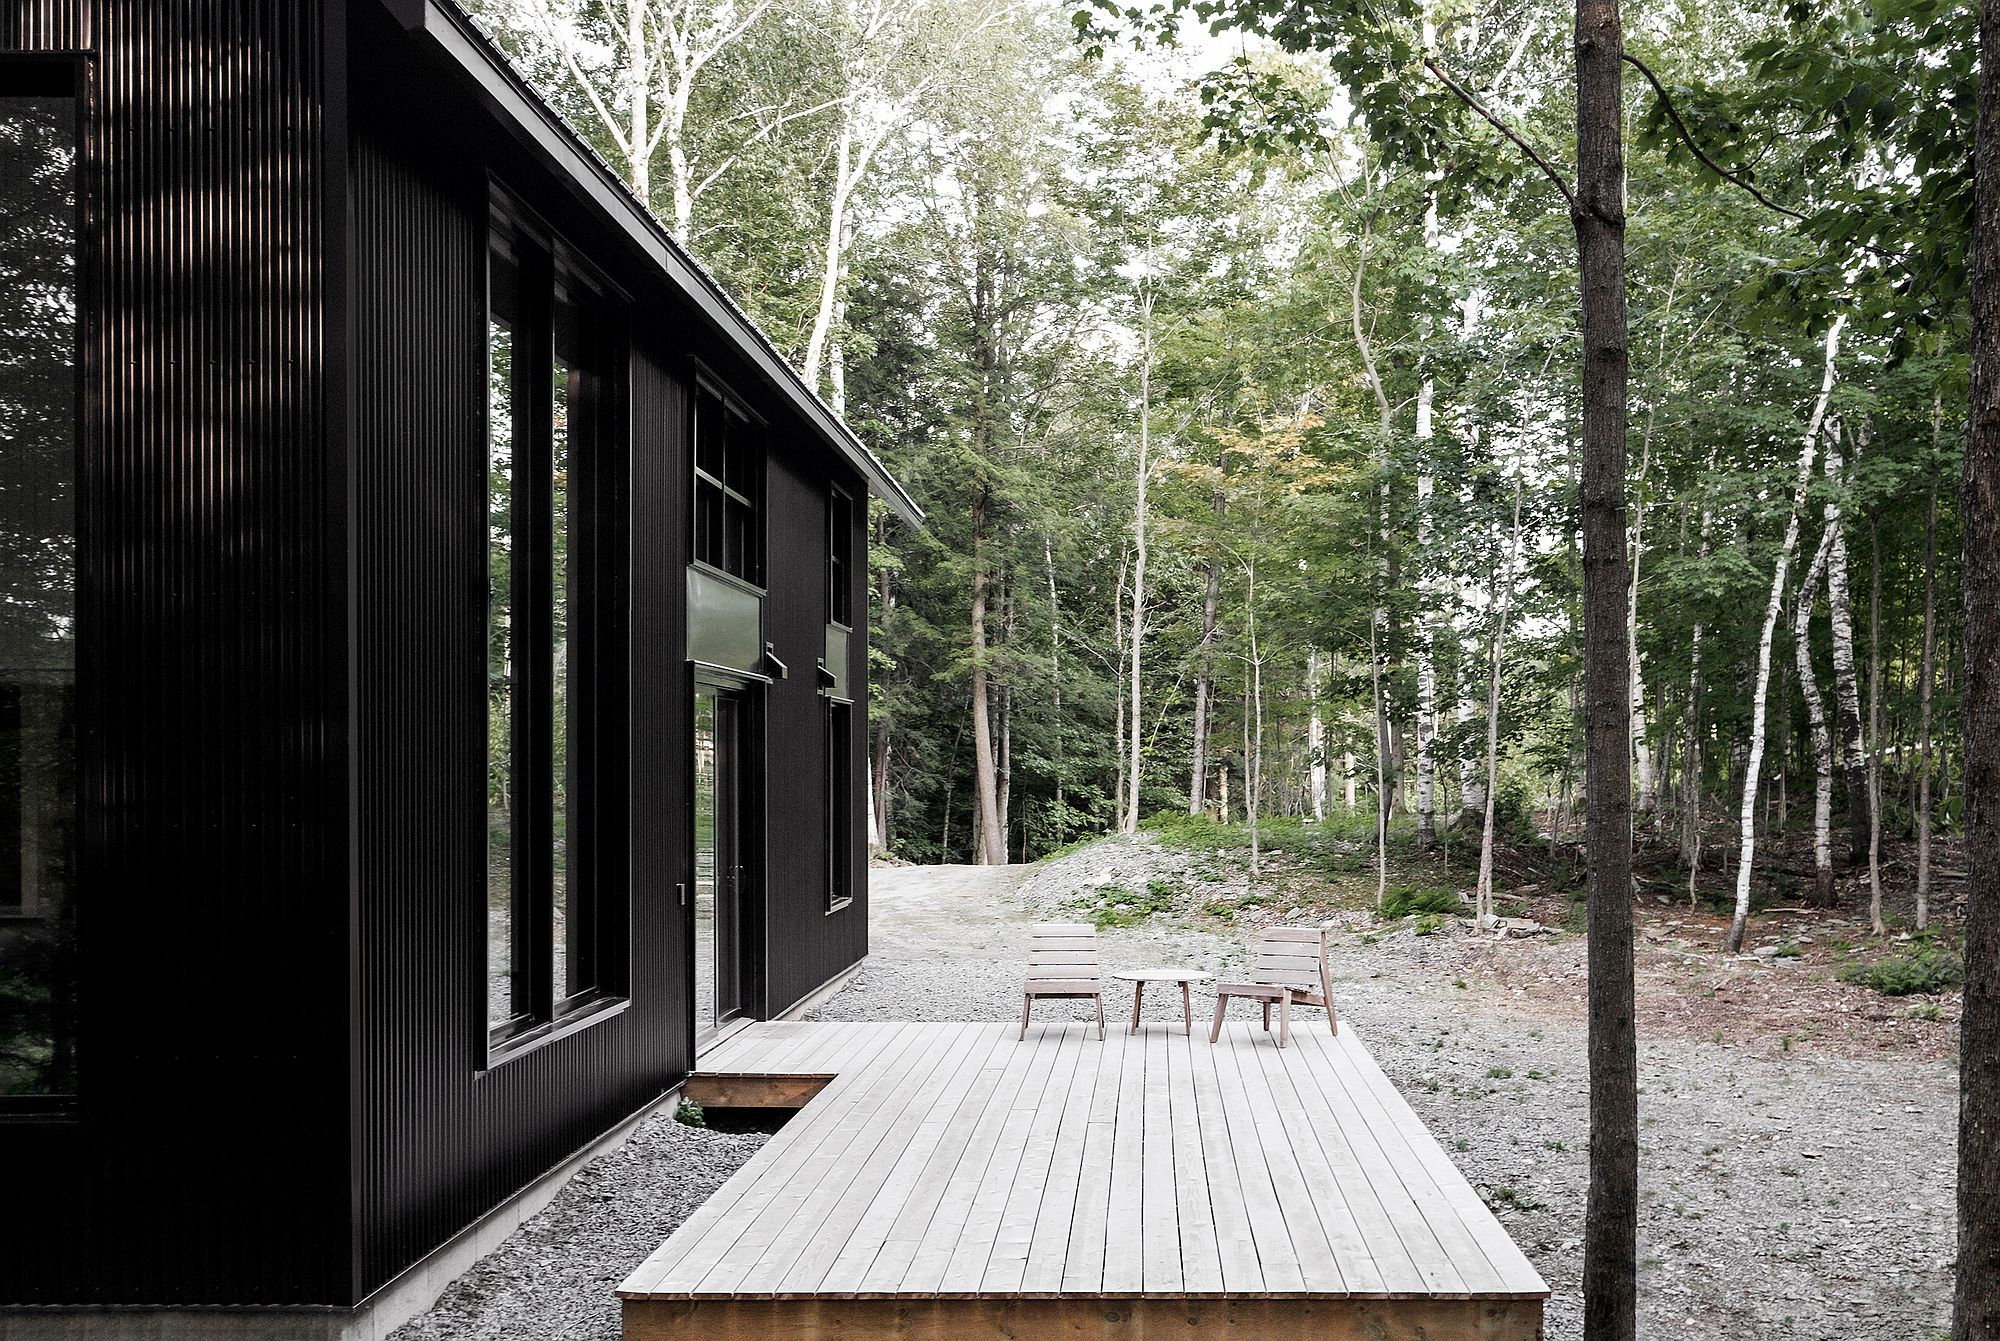 Small wooden deck outside for those who want to take in the freshness of the forest